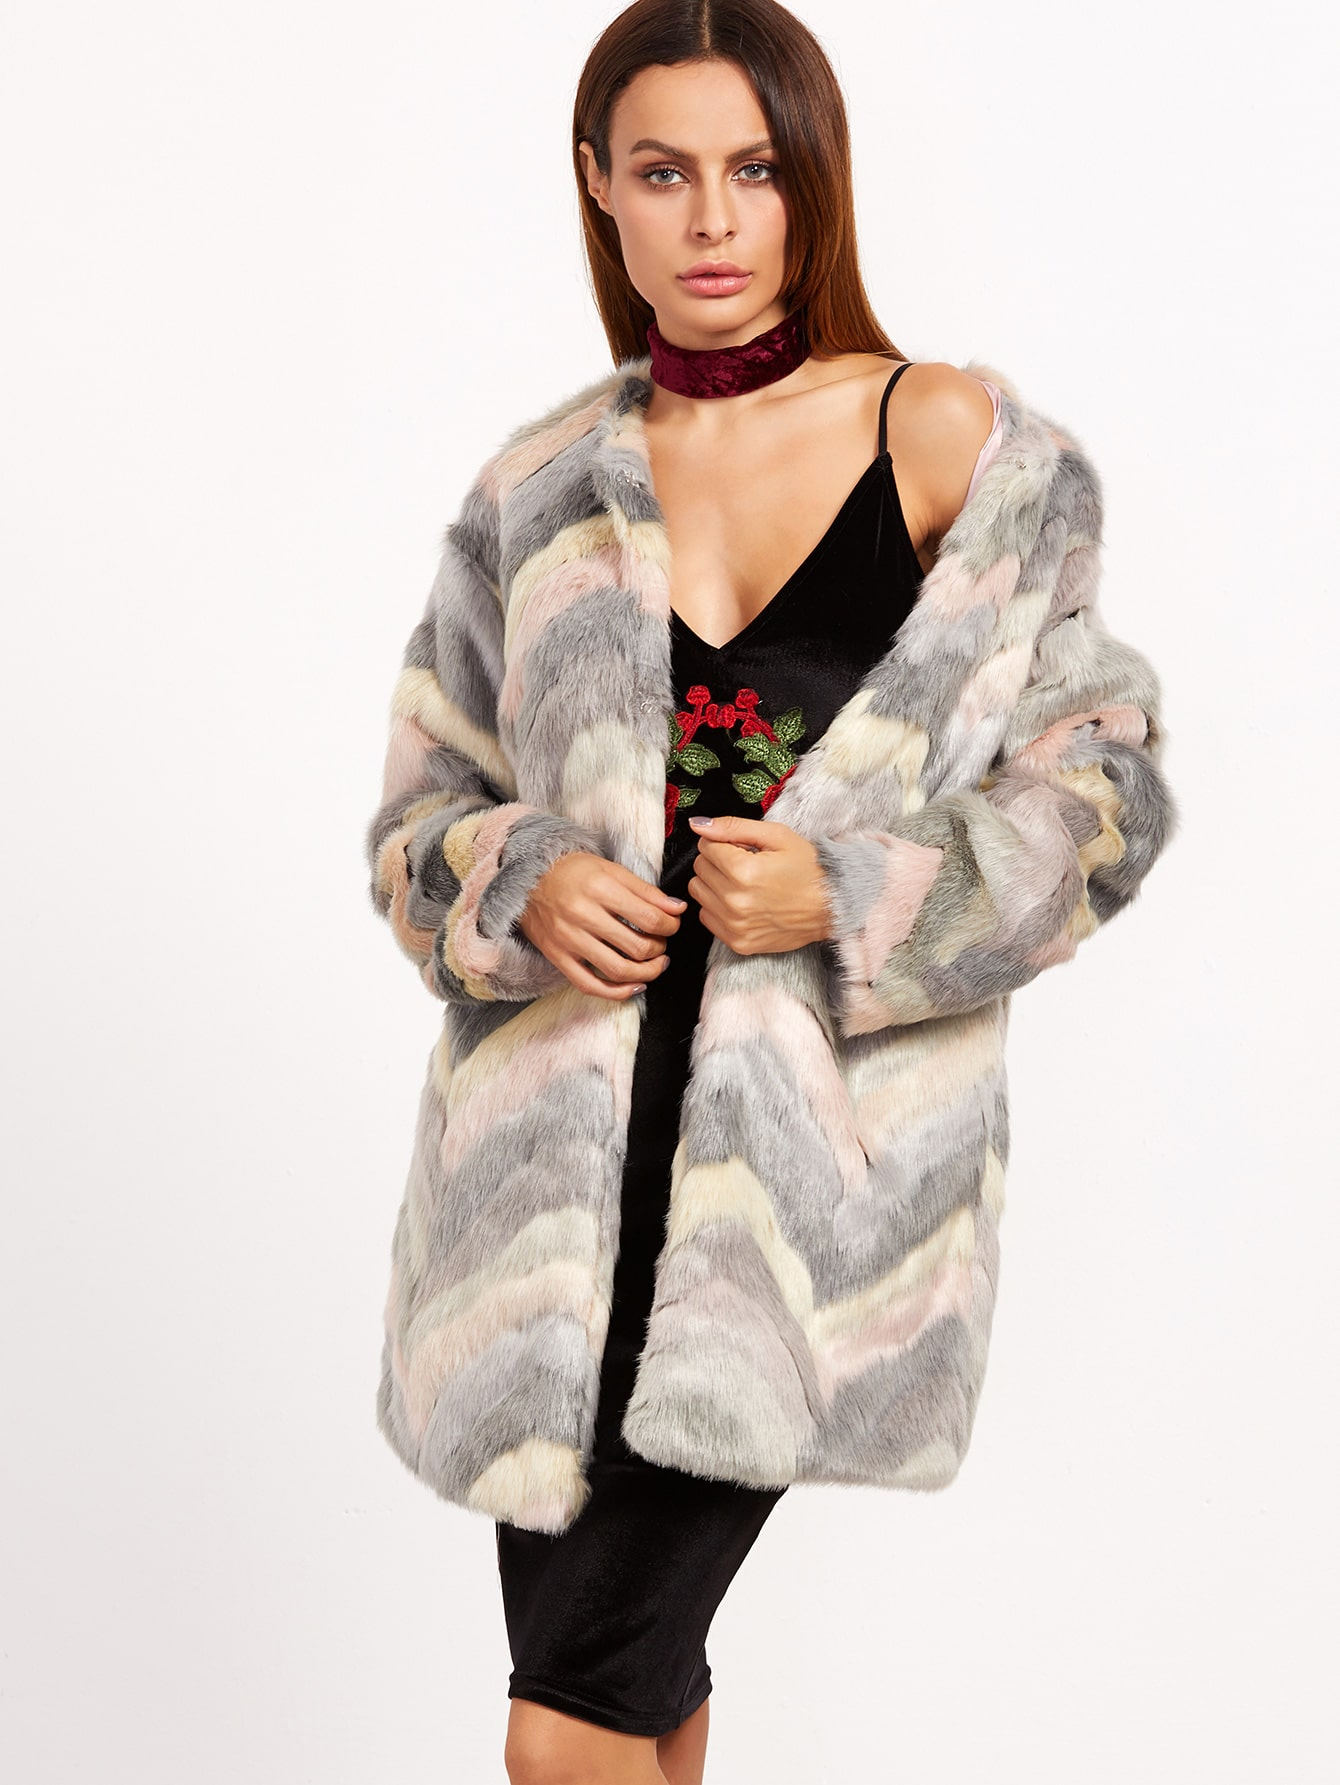 Coats Multi Faux Fur Collarless Elegant Short Autumn Winter Color Block Fabric has no stretch Long Sleeve Outerwear.